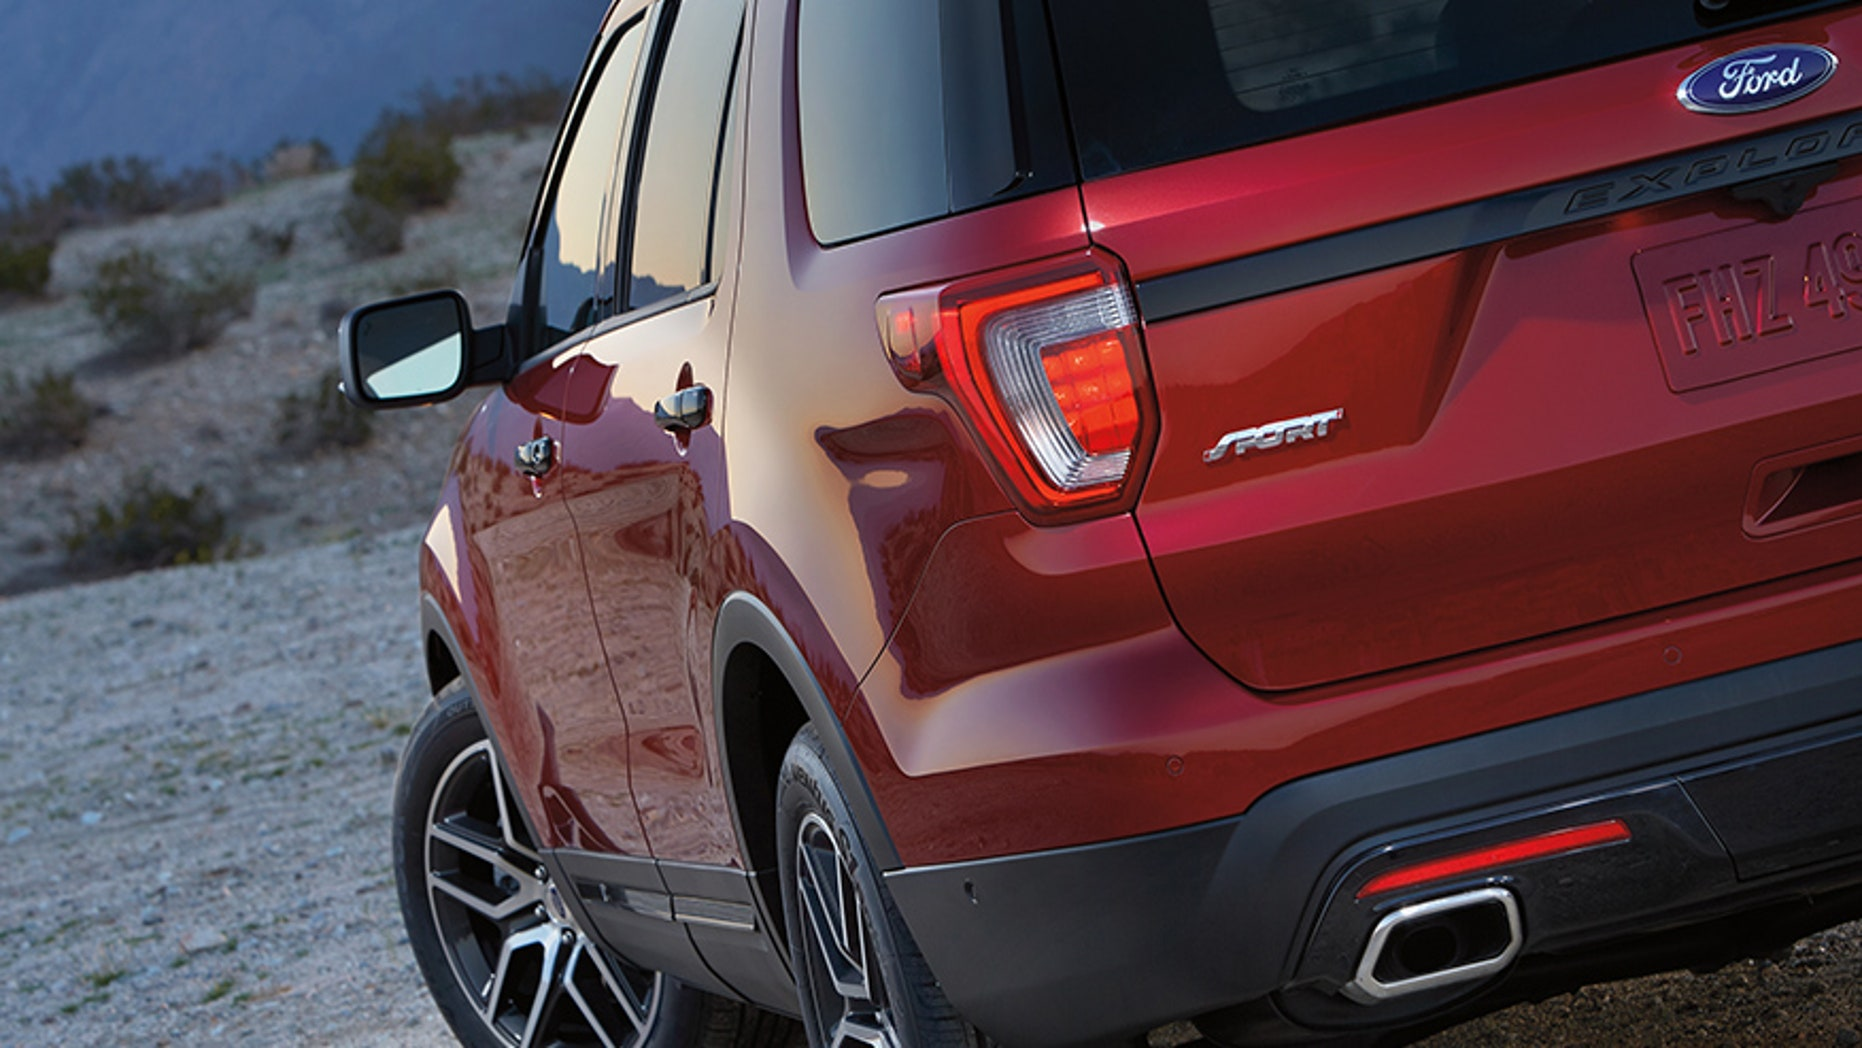 2017 Ford Explorer rear tail light exhaust view